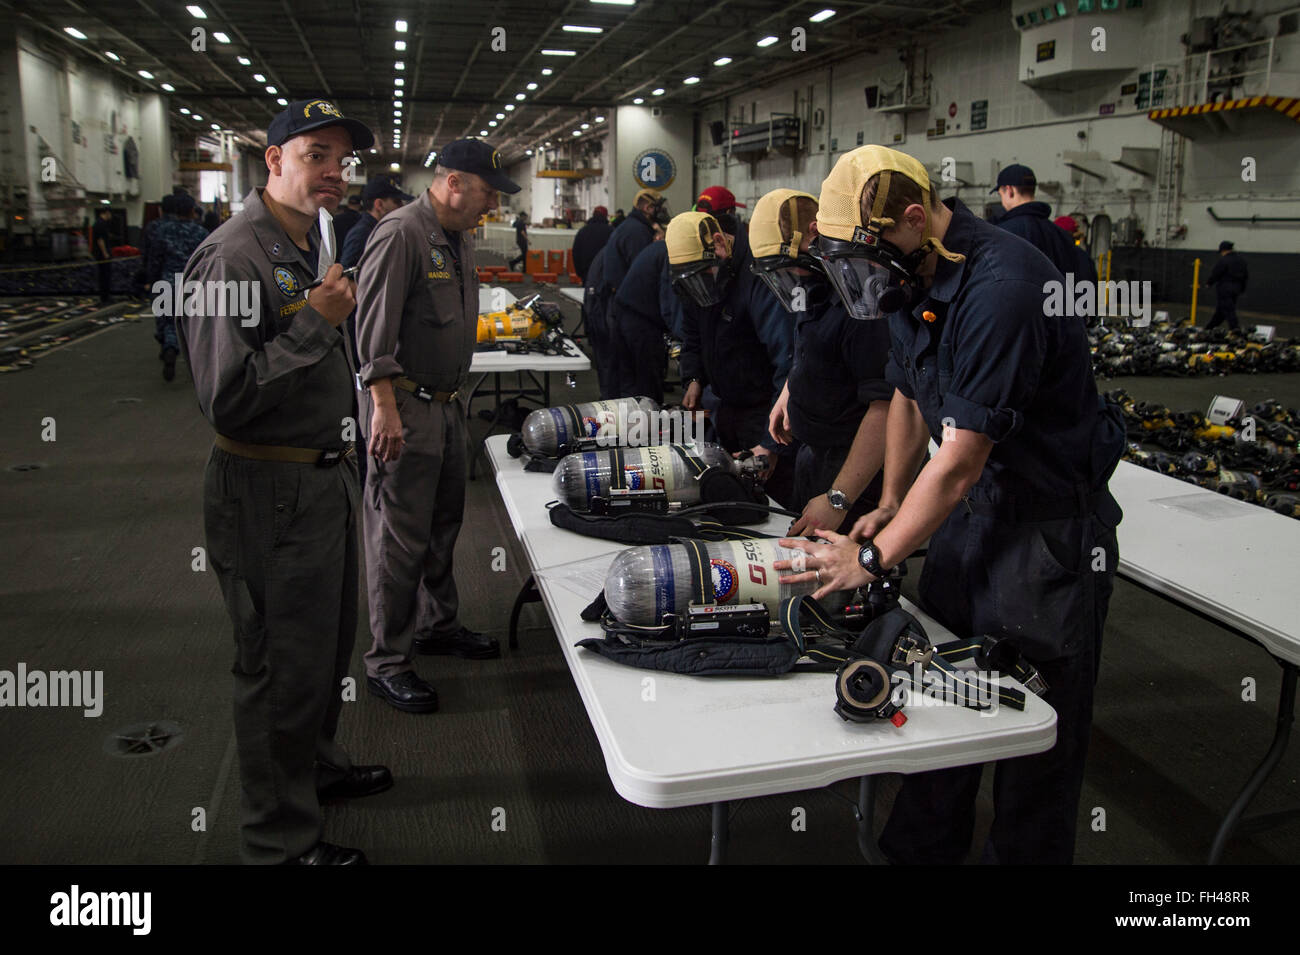 NORFOLK, Va. (Feb. 22, 2016) - Sailors inspect self-contained breathing apparatus bottles and masks in the hangar - Stock Image